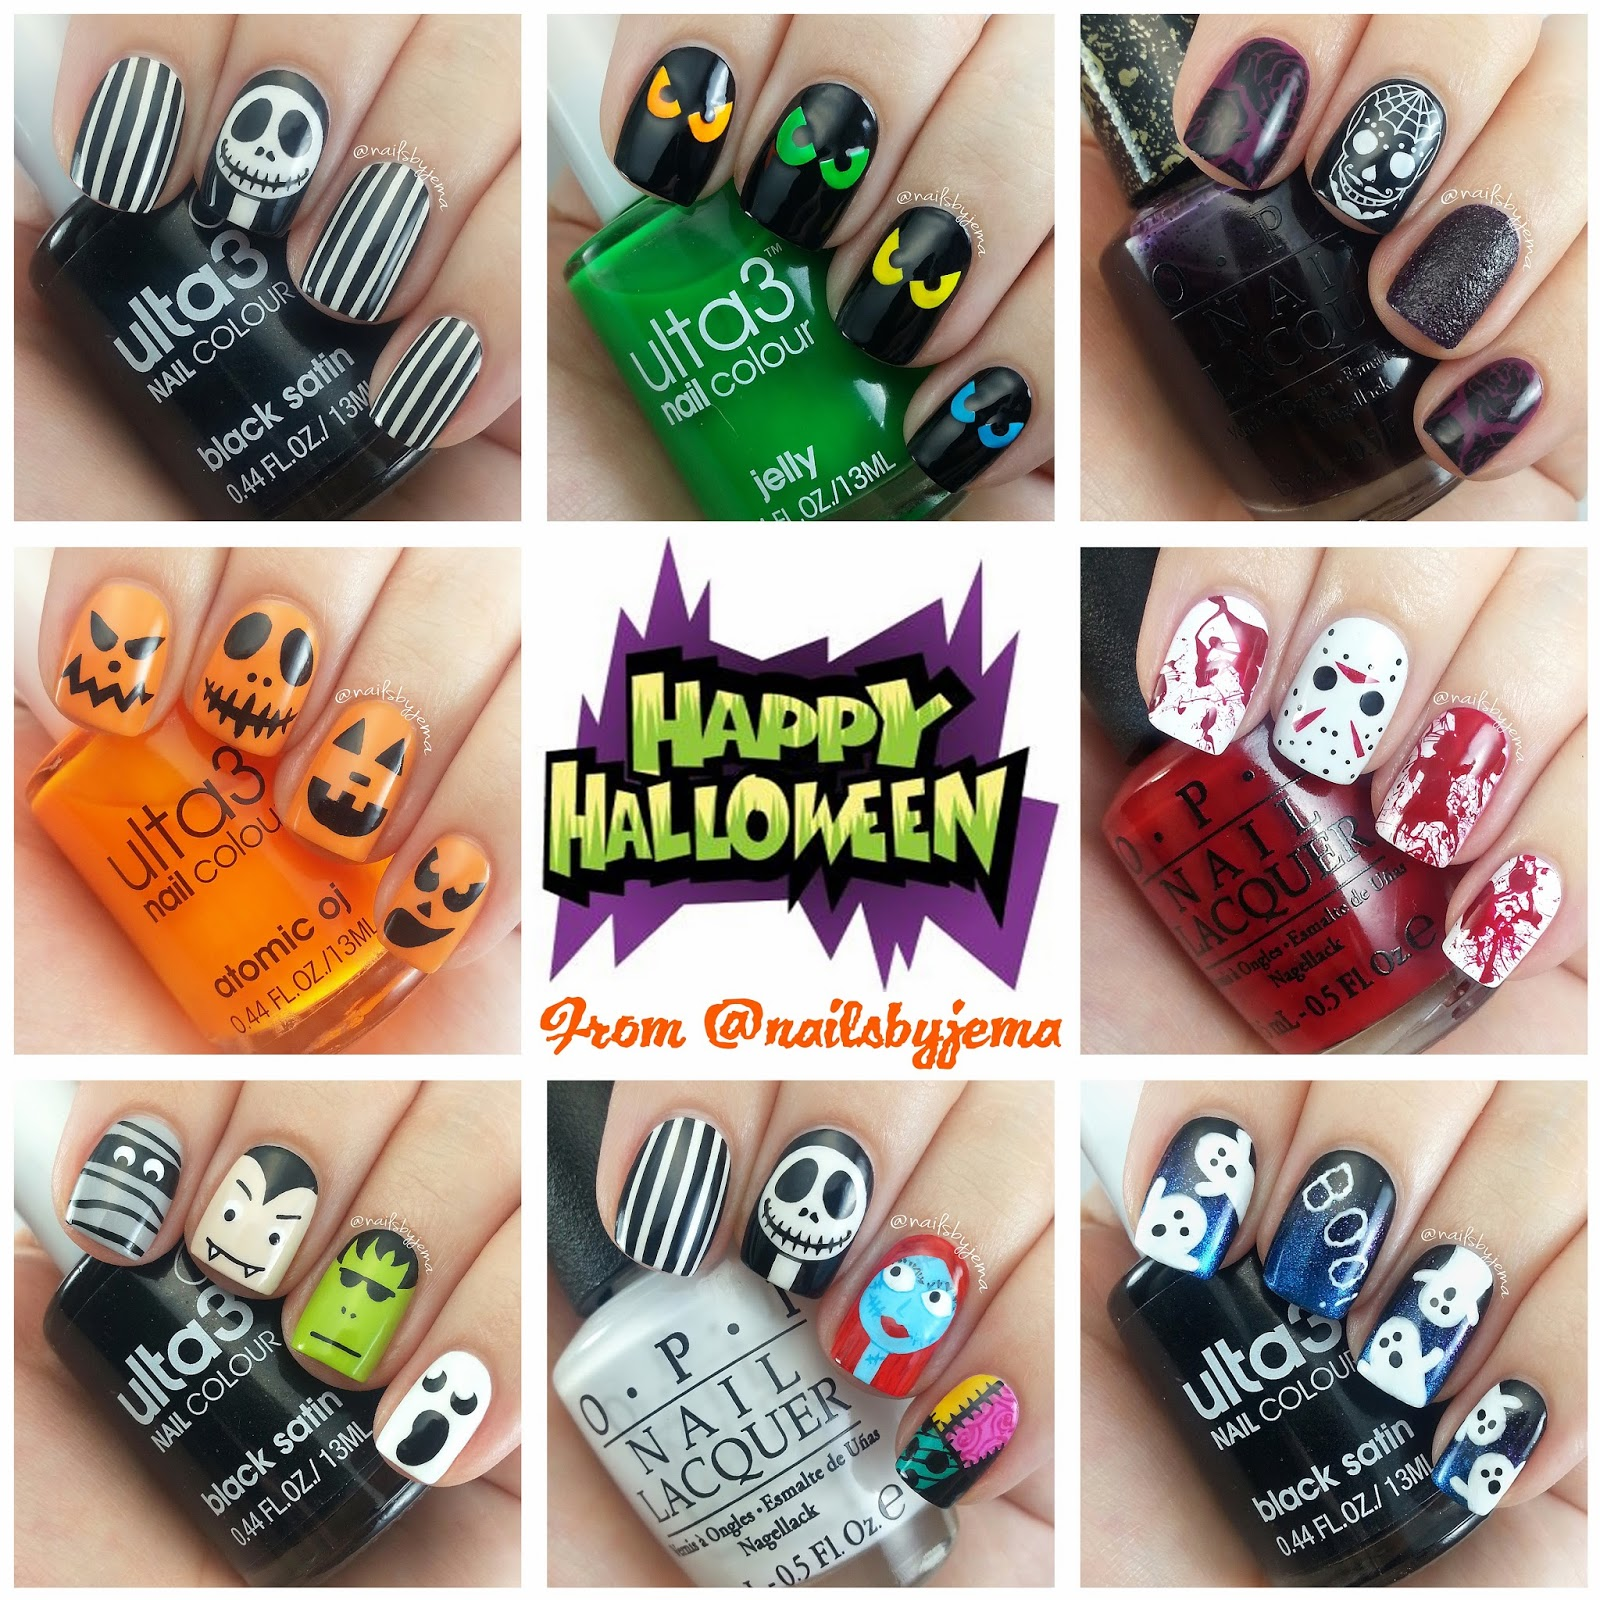 and finally my halloween nail designs wrap up